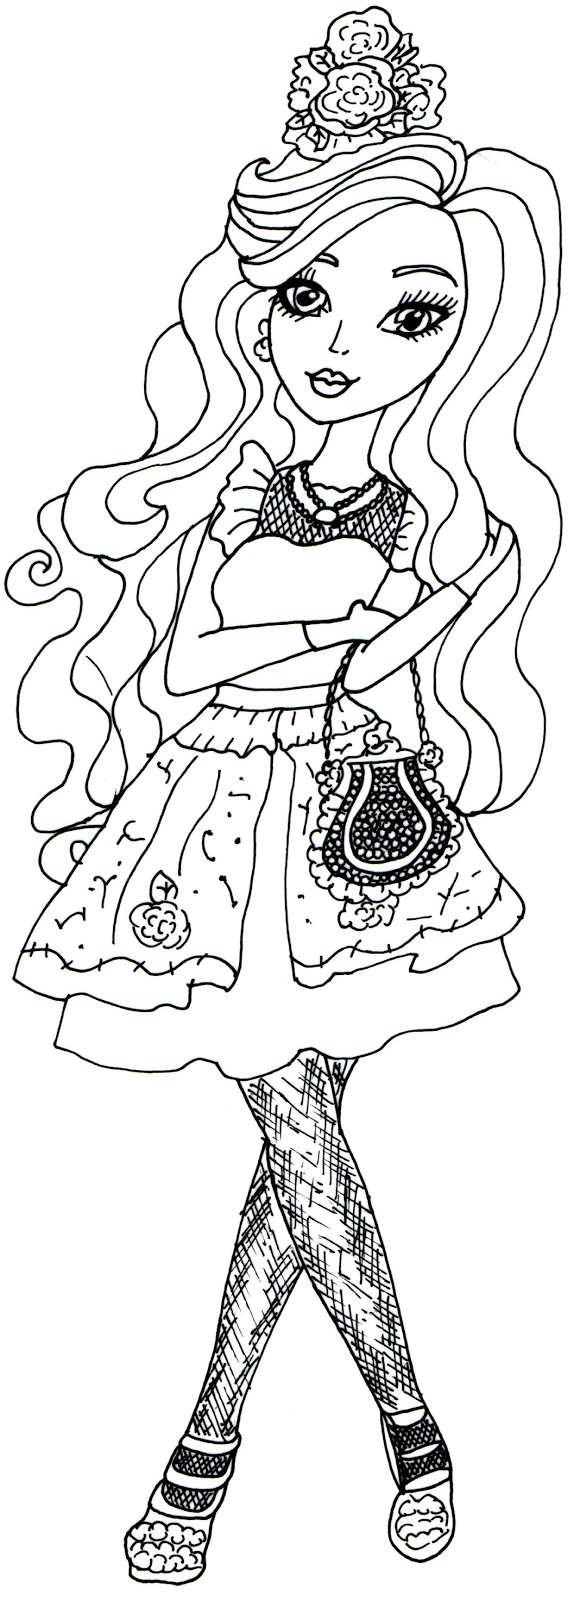 Free Printable Ever After High Coloring Pages April 2014